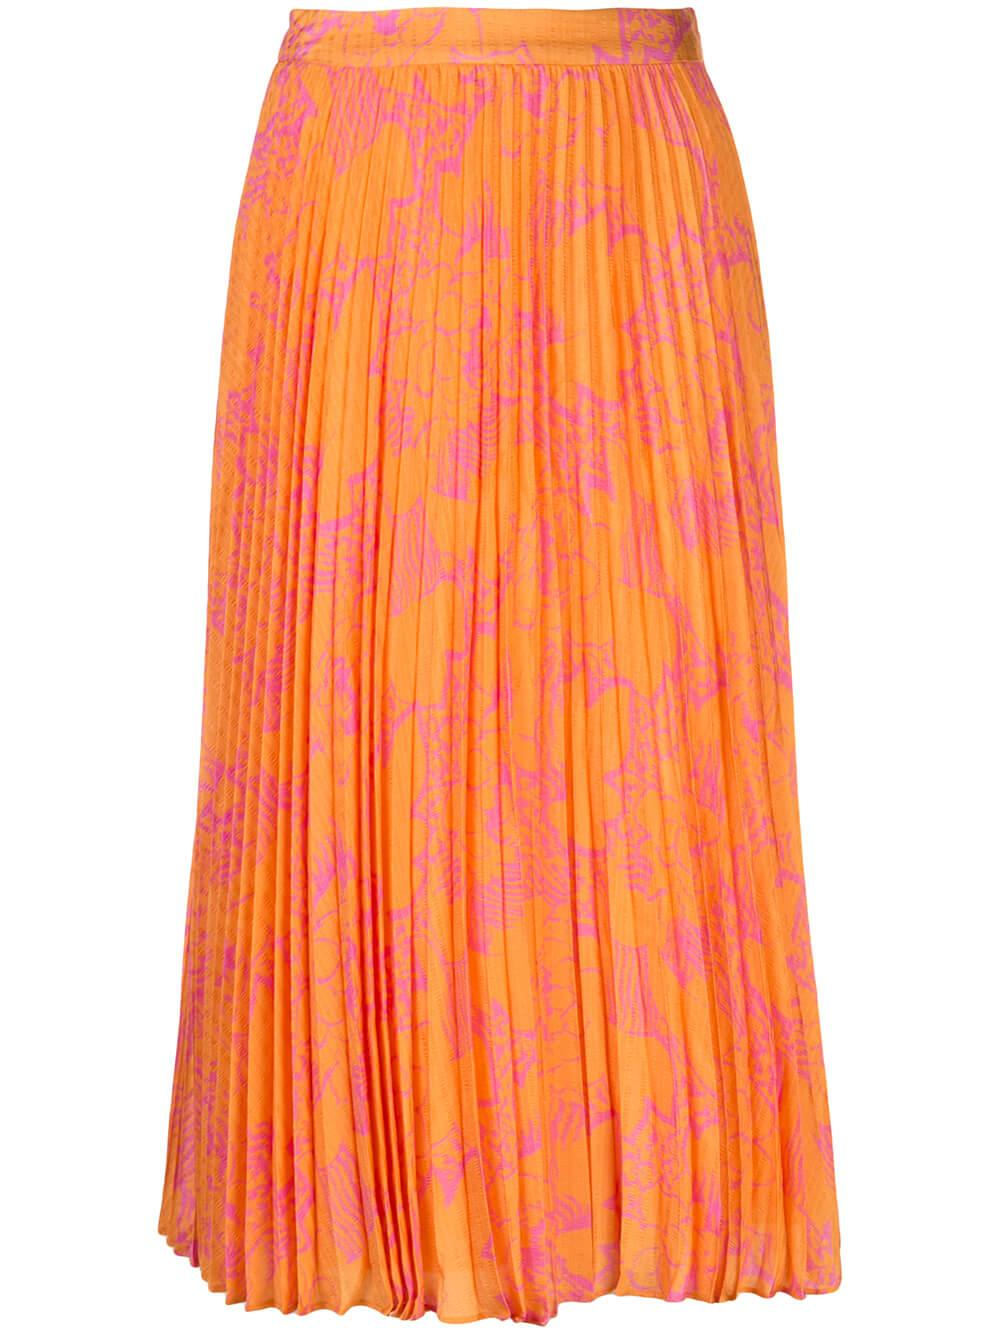 Jeana Pleated Ikat Flower Printed Skirt